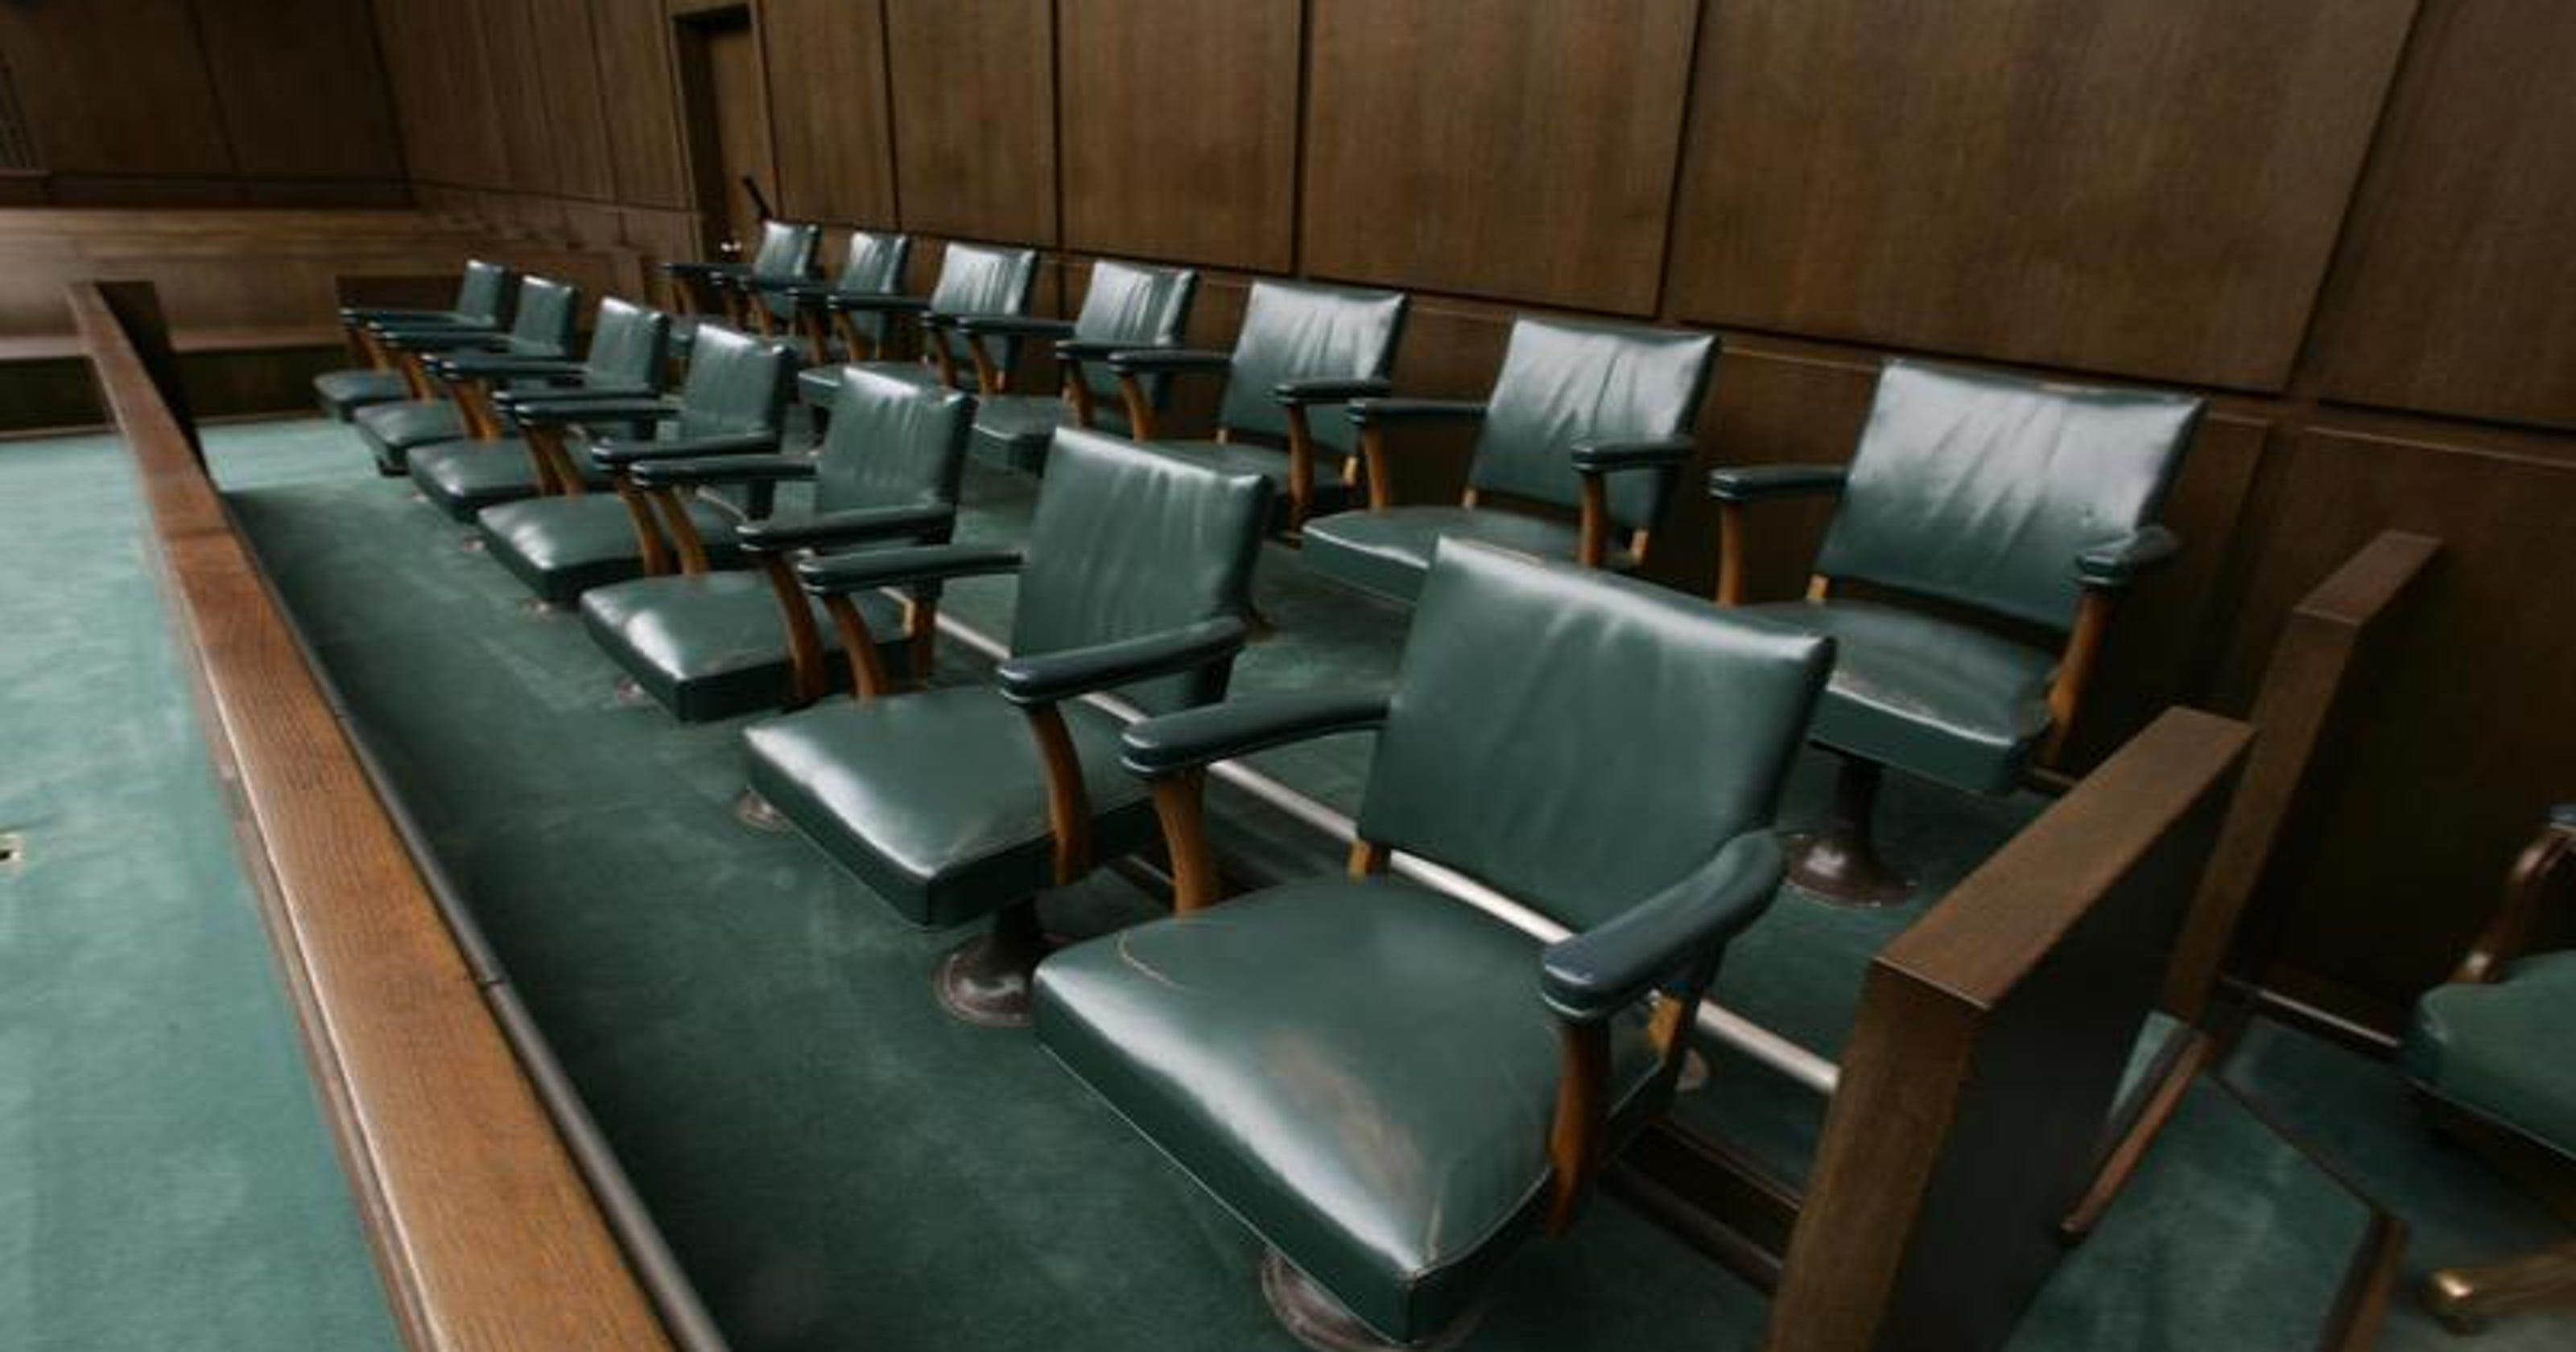 Error leads to urgent jury summons in New Castle County